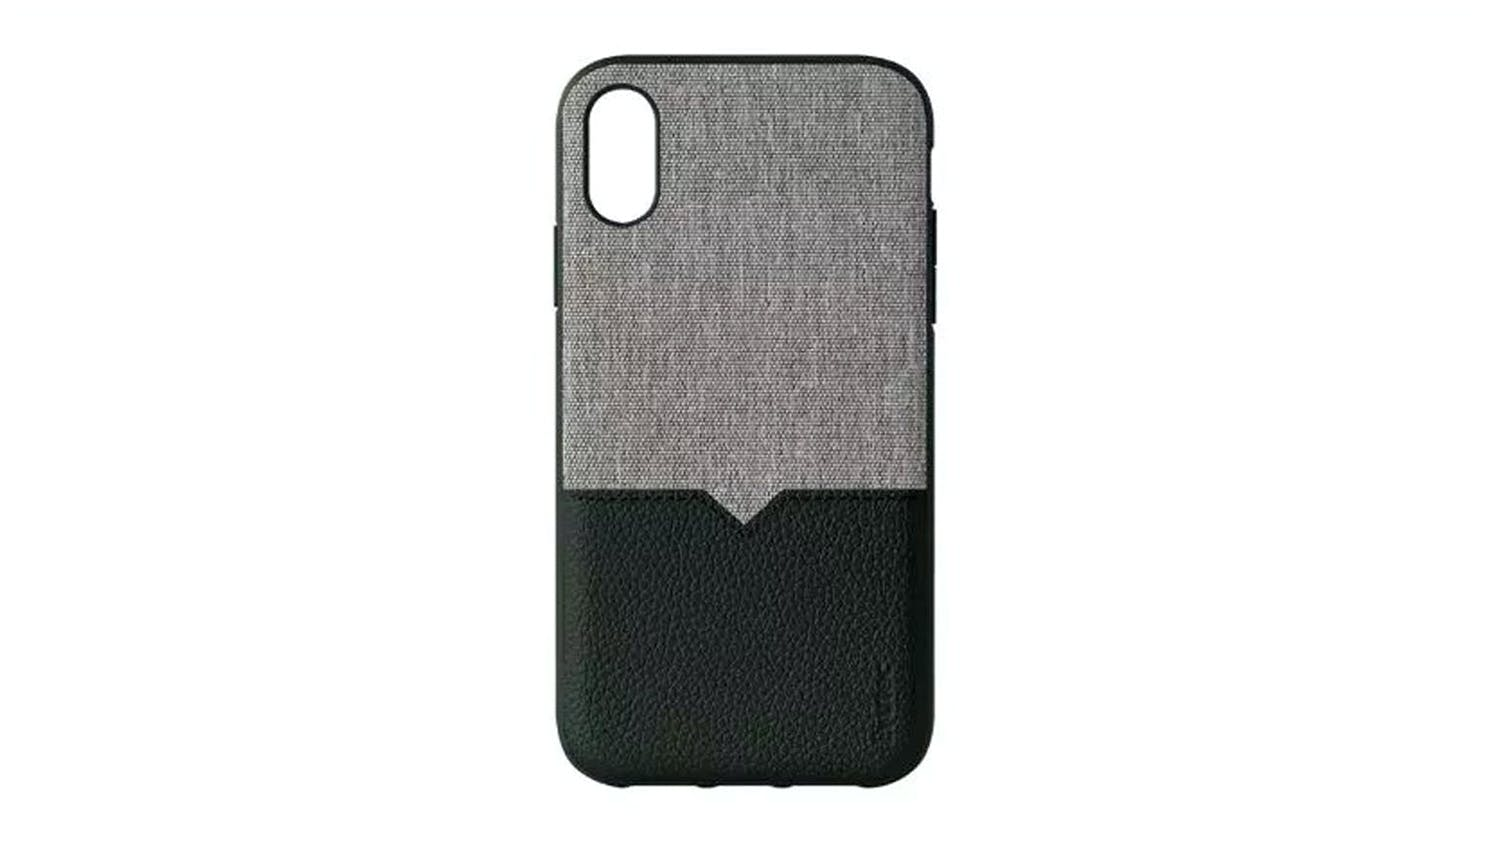 Evutec Northill Case for iPhone XR - Black/Canvas